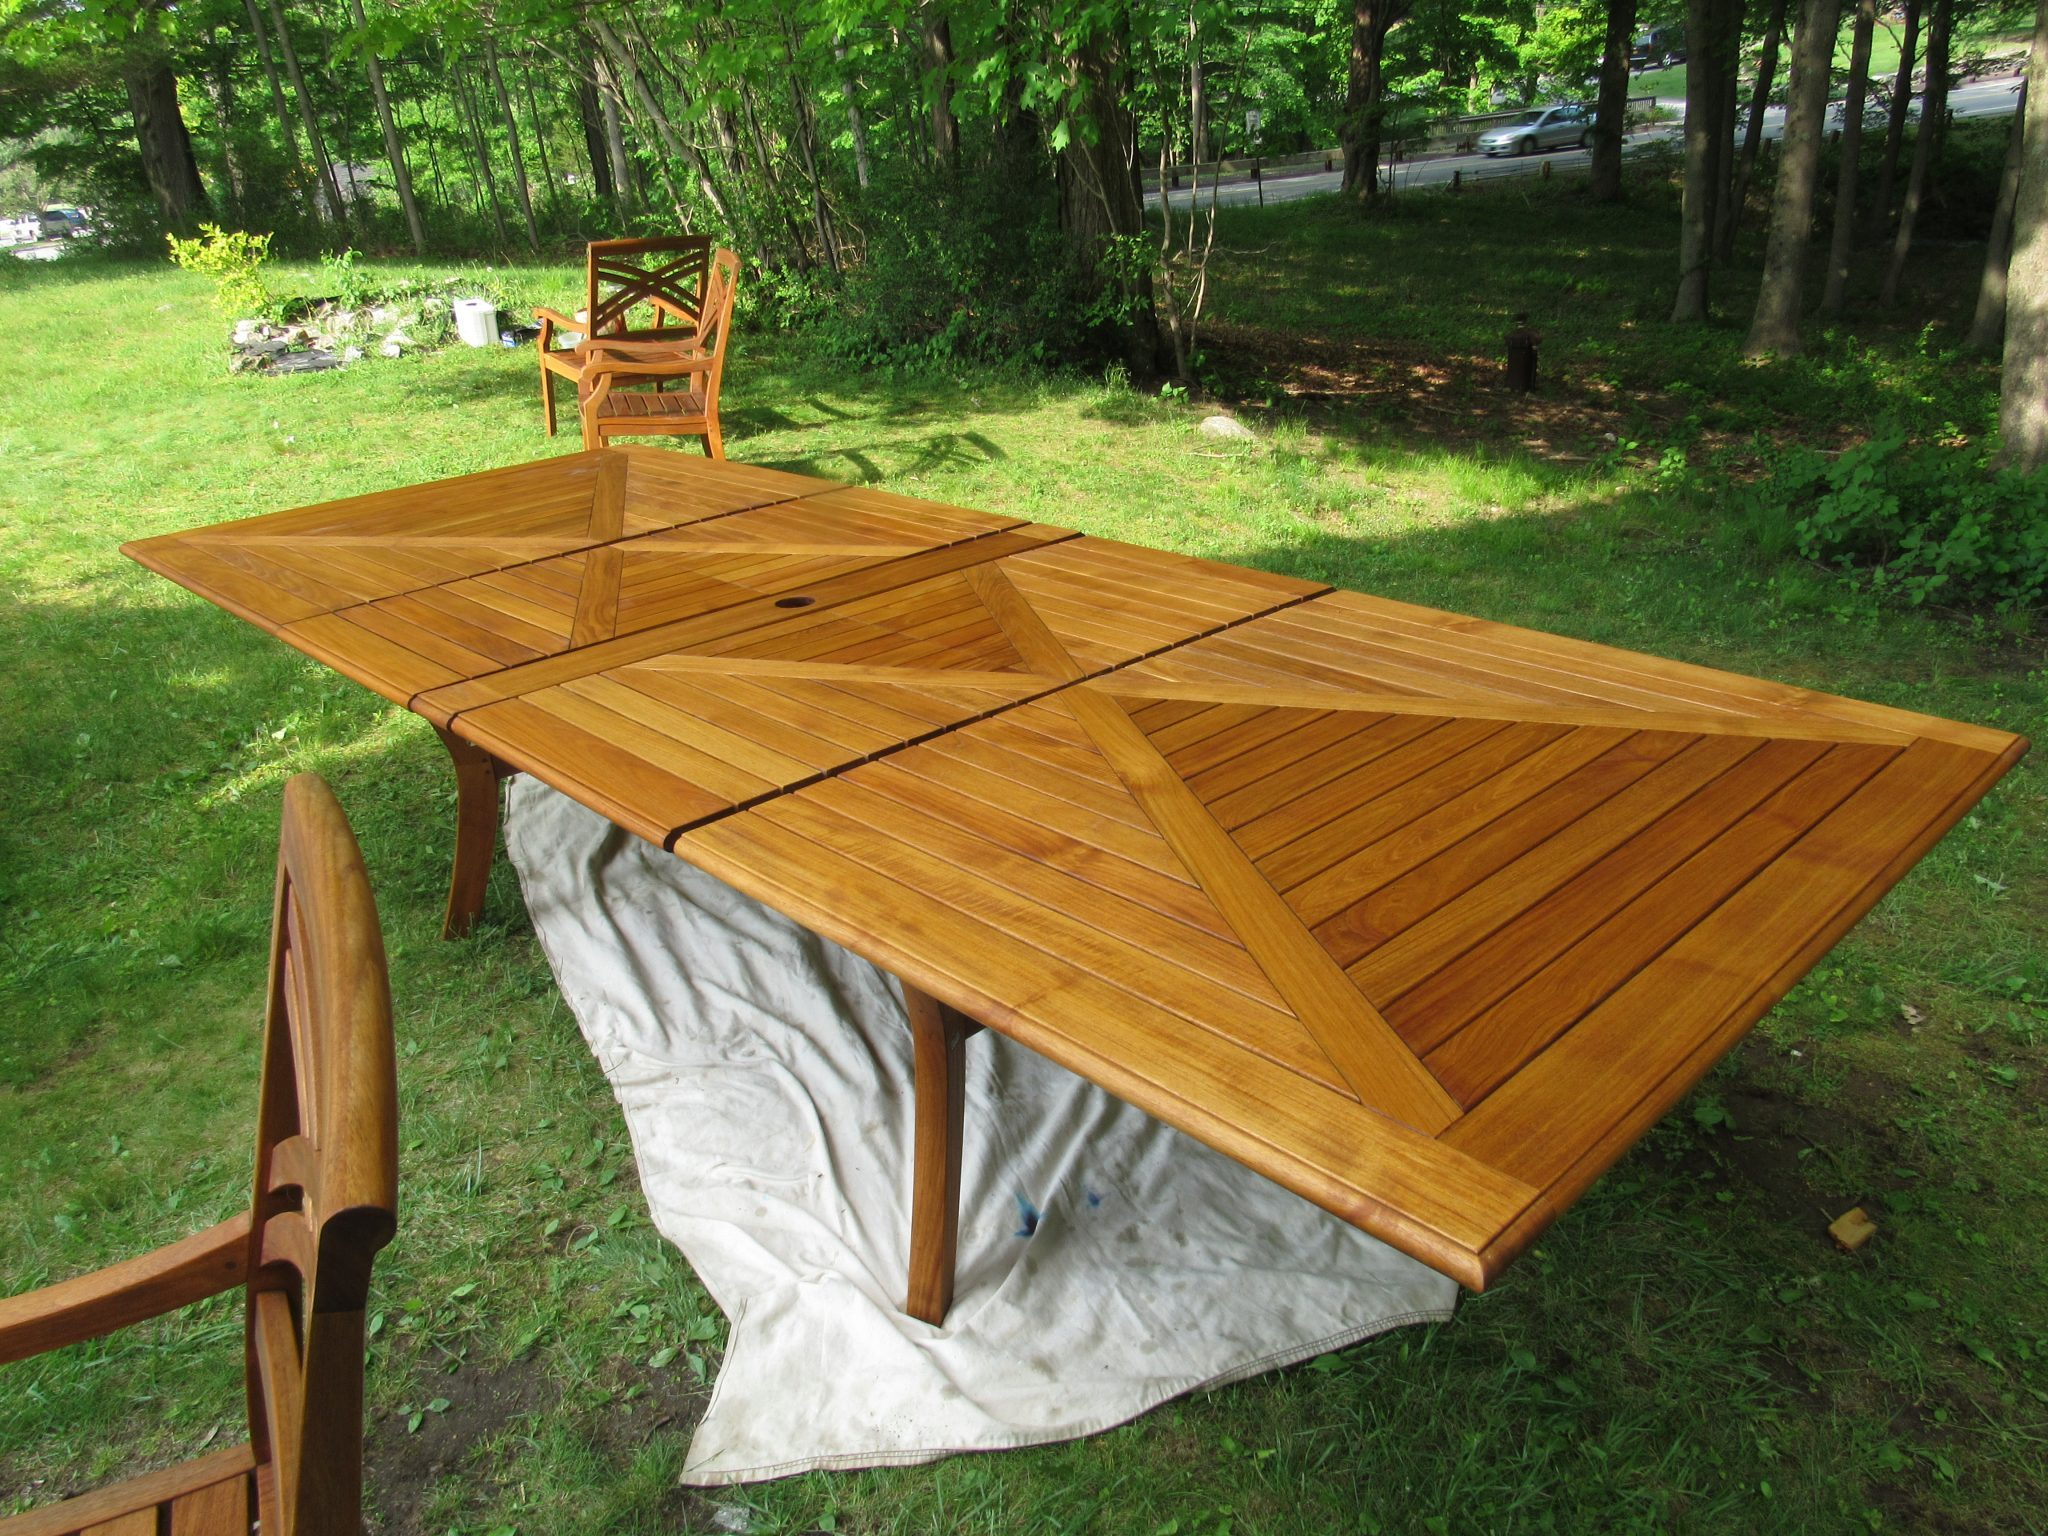 Pound Ridge Painting Co. Can Make Your Home Its Very Best. Contact Us To  Rejuvenate Your Deck And Teak Furniture Before All Of Your Summer  Activities Begin!